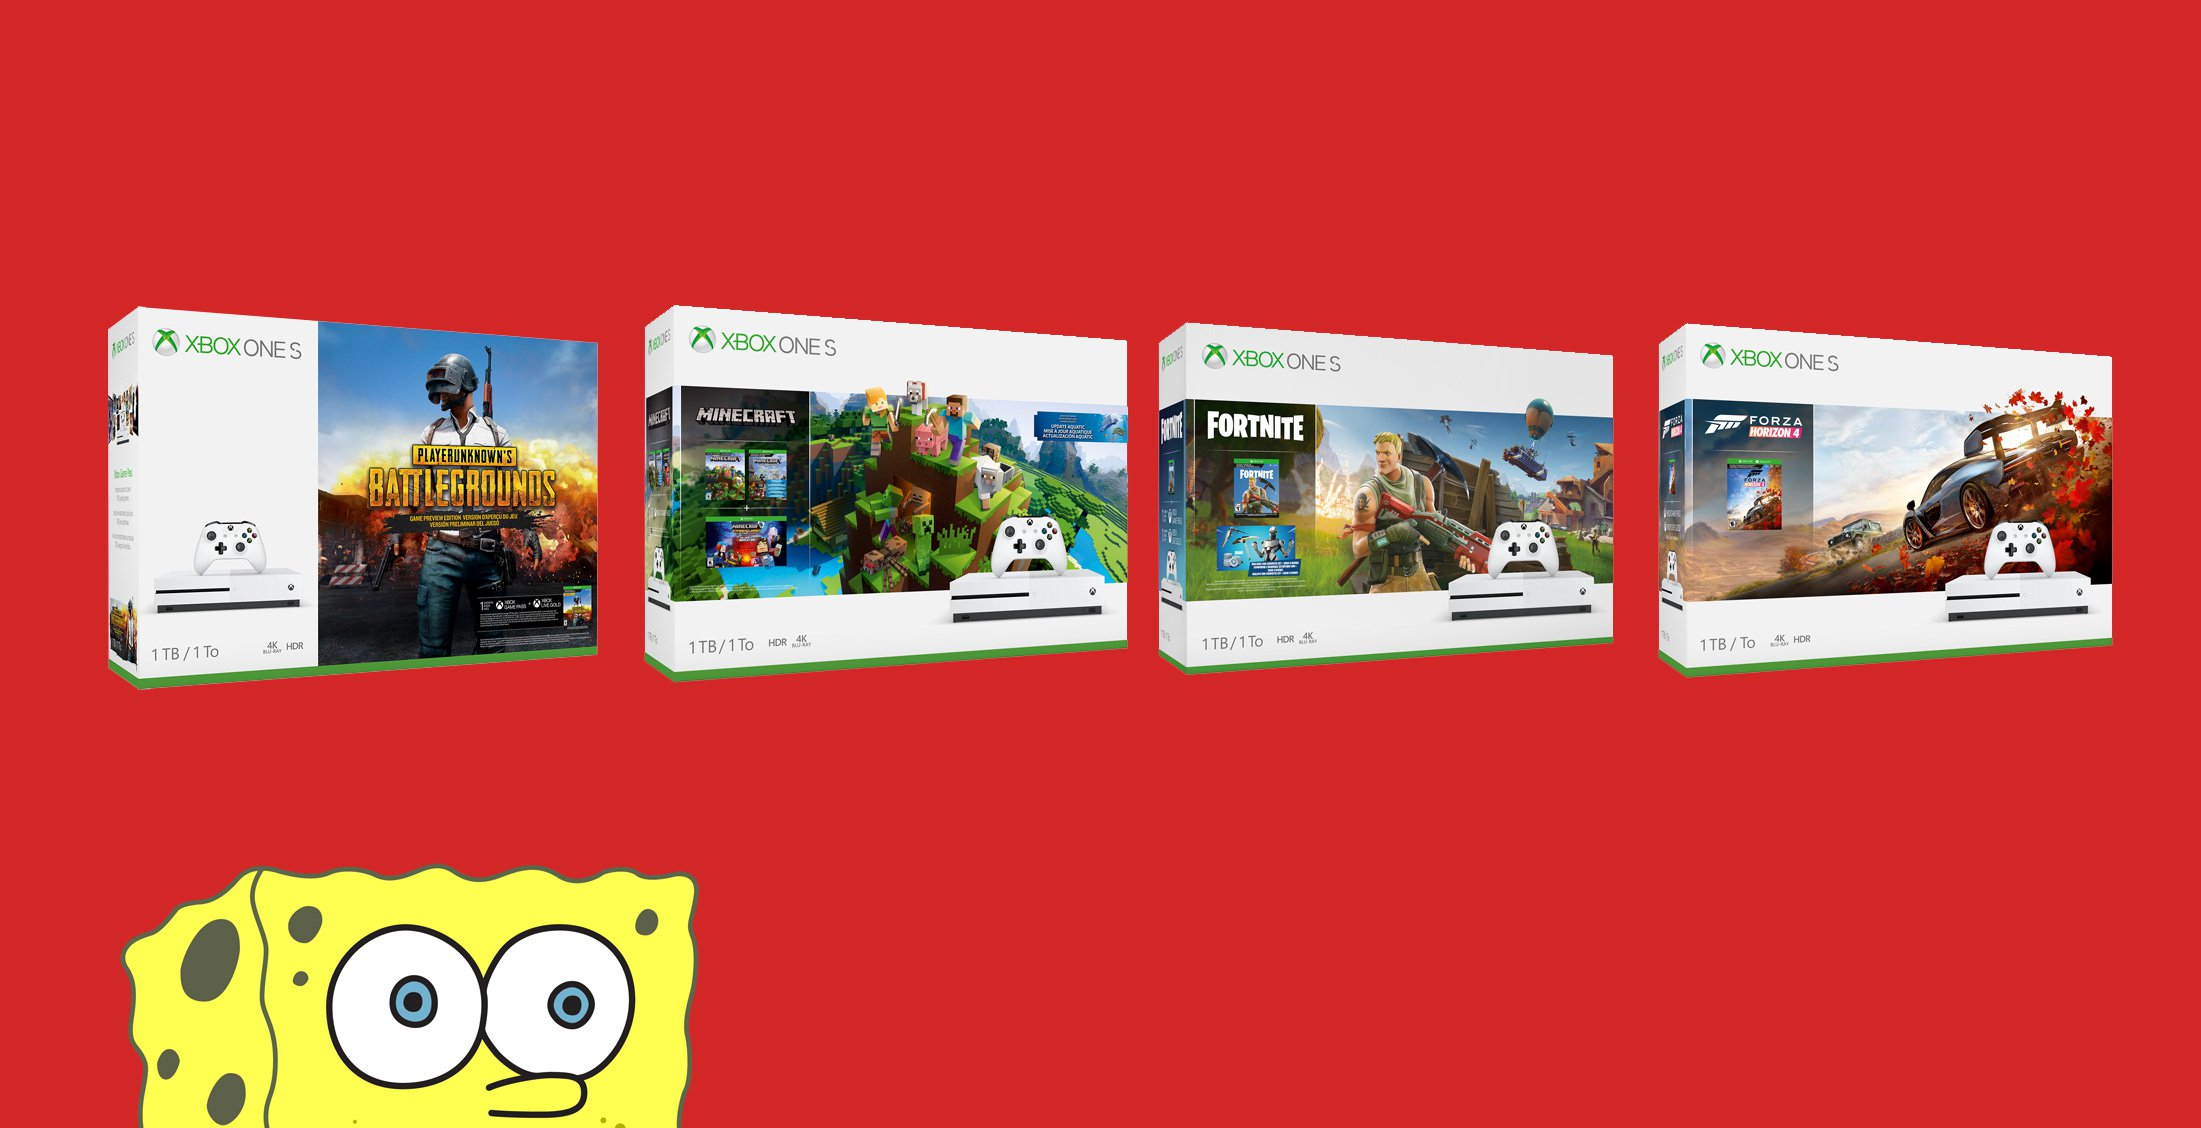 Deal 199 Xbox One S Bundles Return For Christmas At Walmart